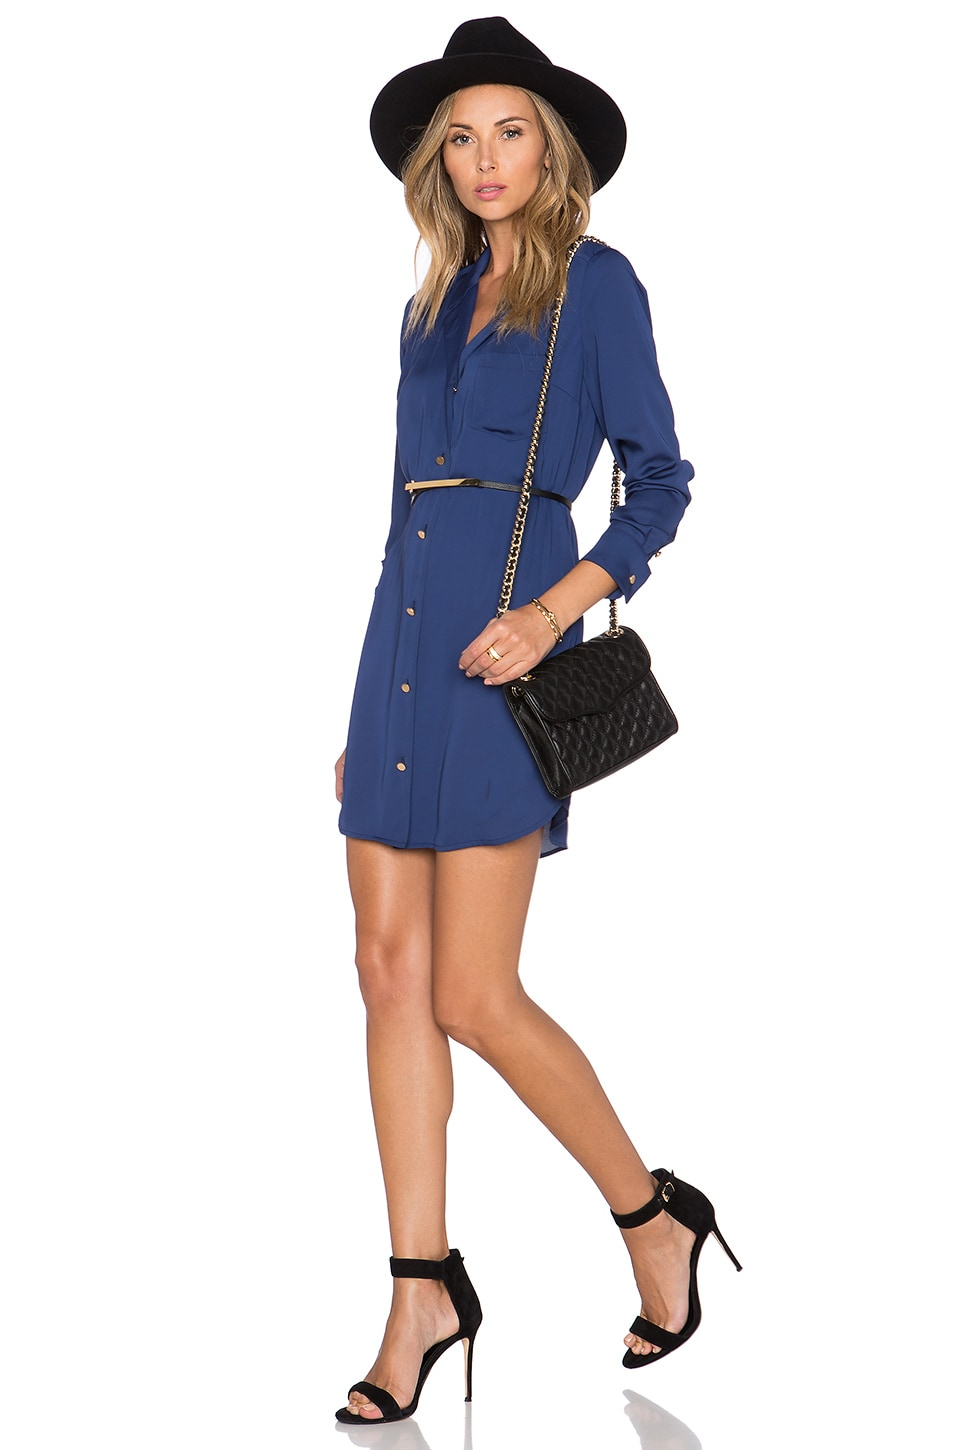 The Tunic Dress